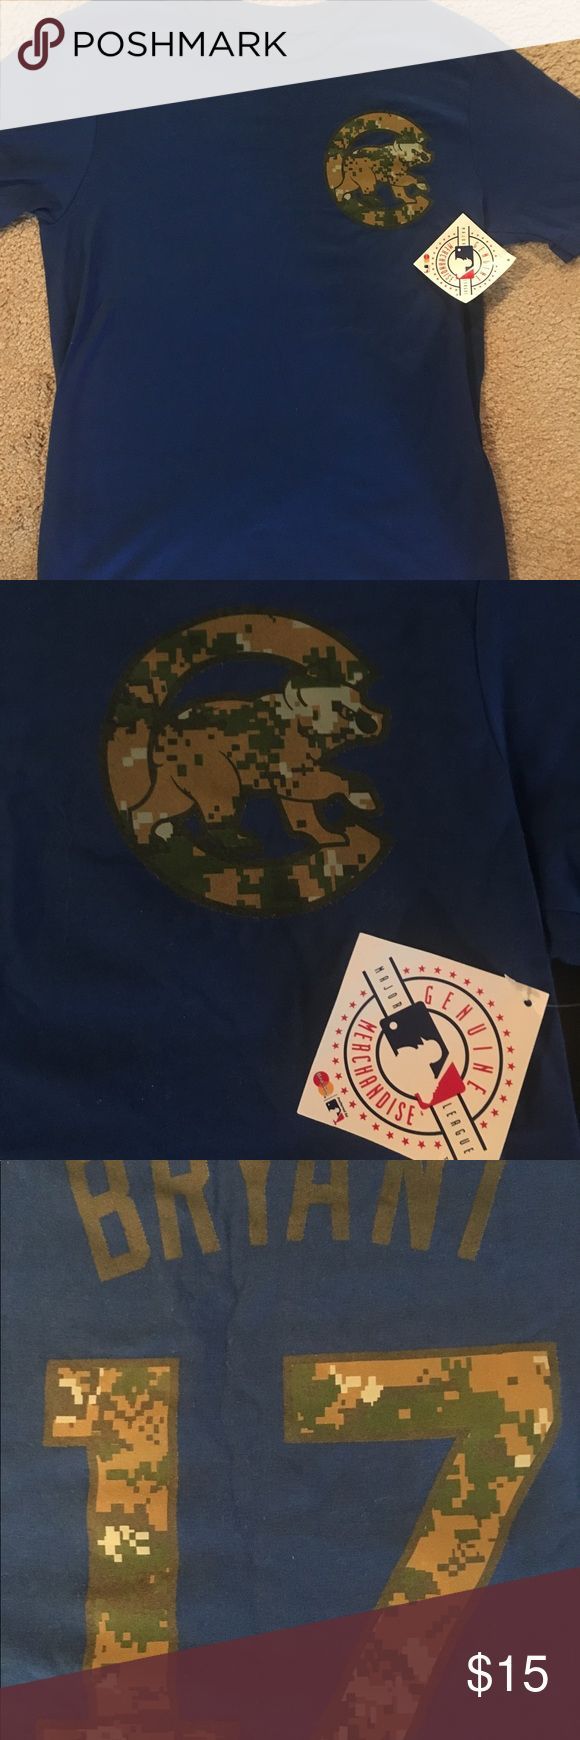 NWT 💙❤️ Boys / Youth Chicago Cubs Tee Shirt. NWT Chicago Cubs Bryant tee Shirt. Size 14-16. Camo logos. Majestic Shirts & Tops Tees - Short Sleeve